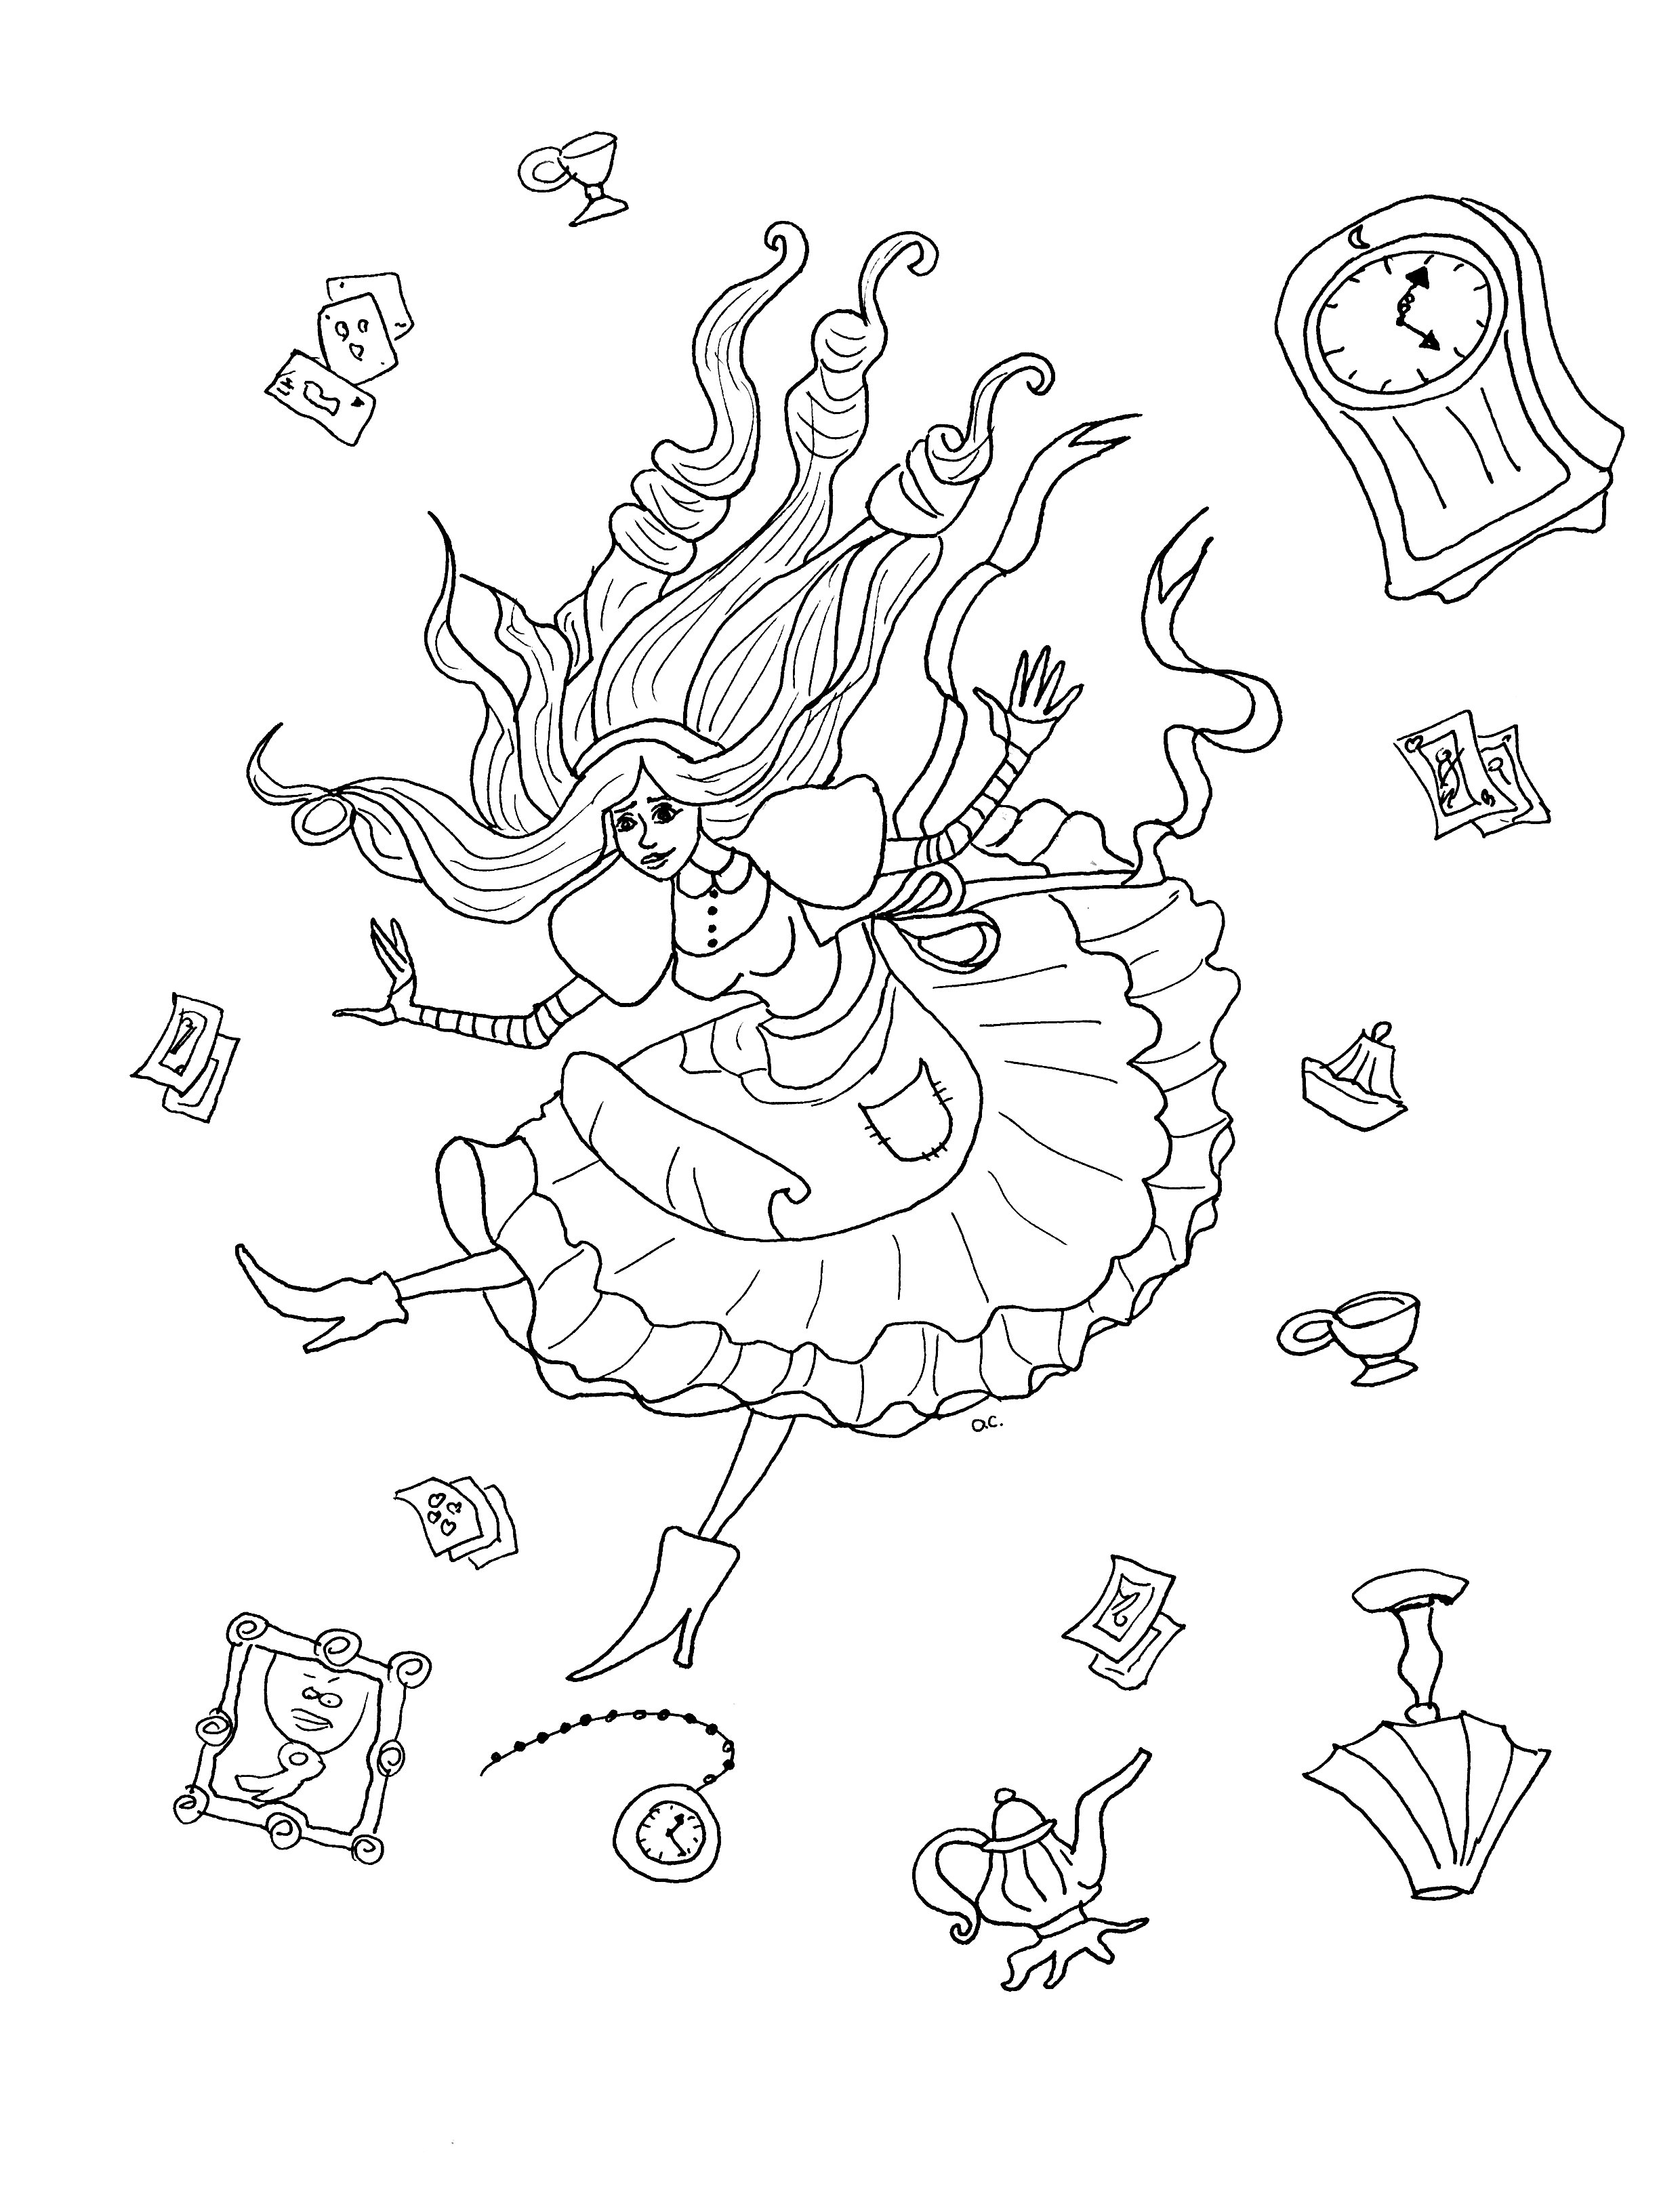 alice in wonderland fairy tales adult coloring pages. Black Bedroom Furniture Sets. Home Design Ideas